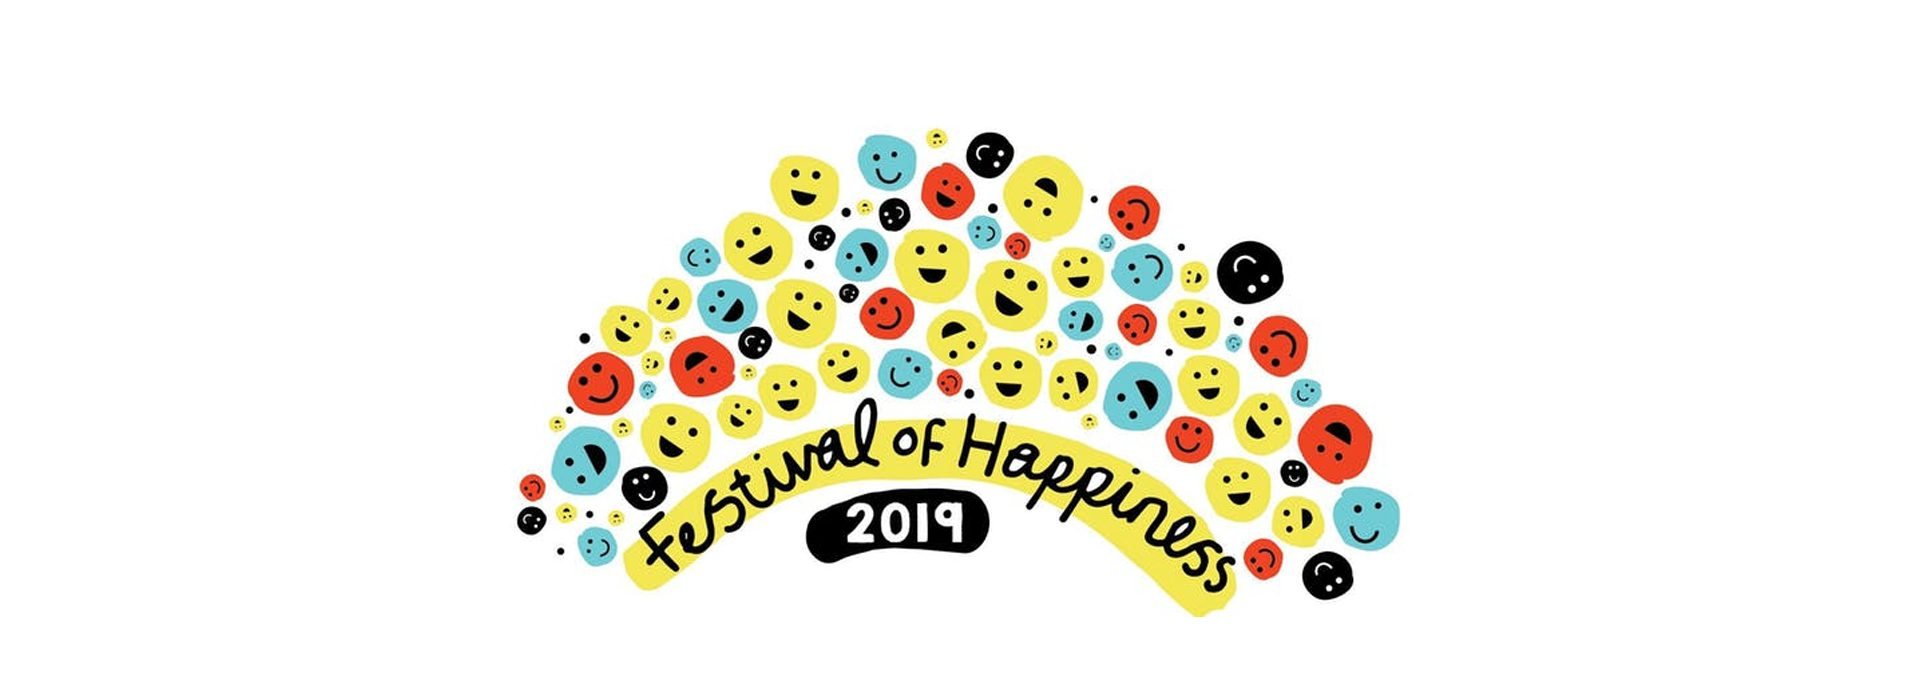 Festival of Happiness